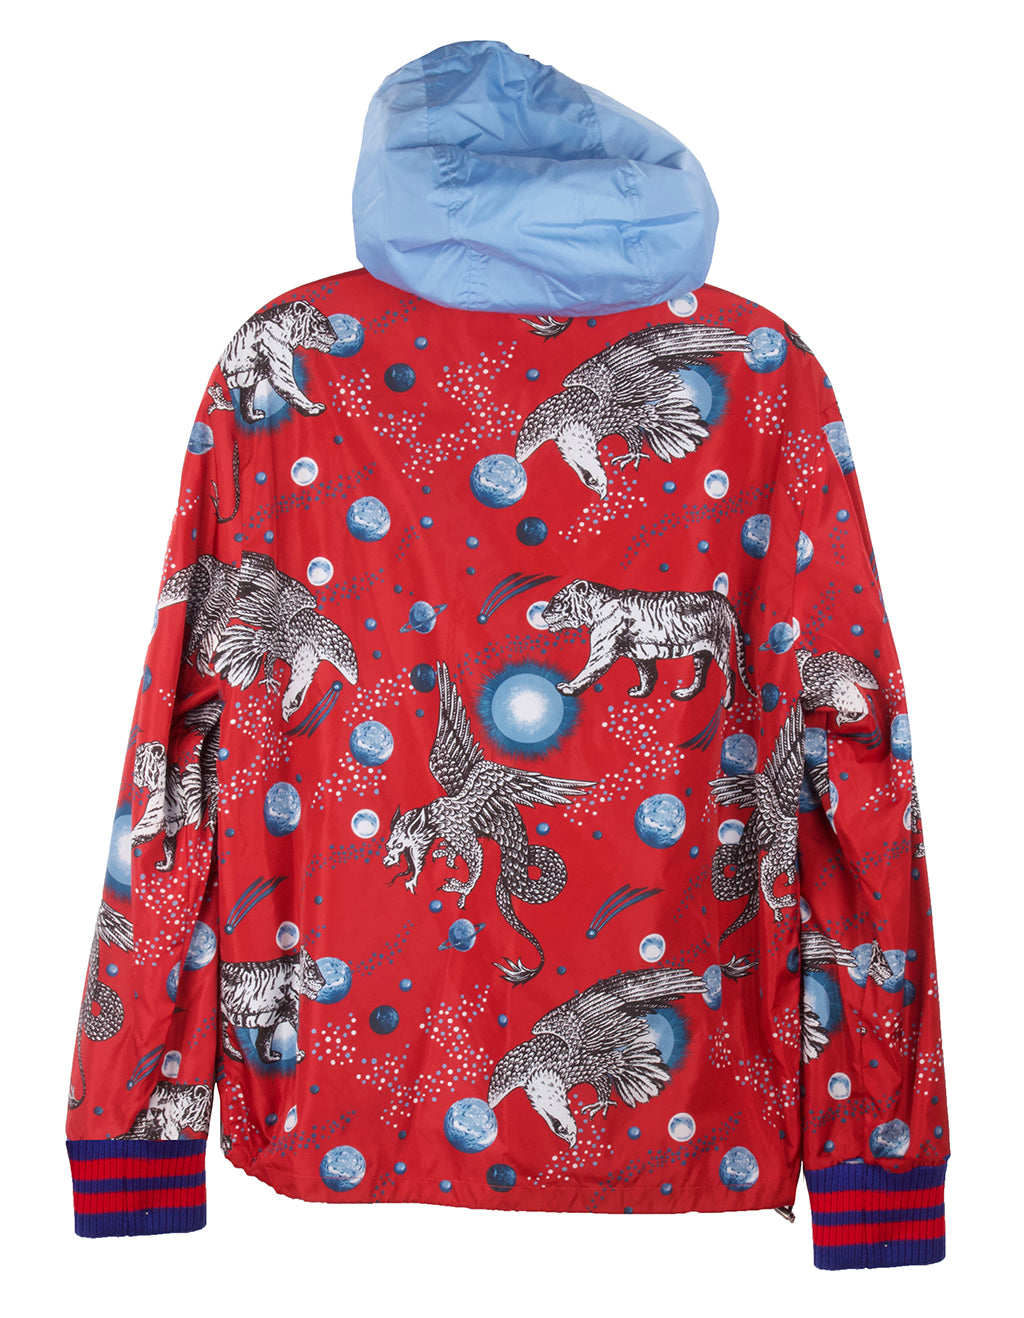 Gucci Red Space & Animals Rain Jacket